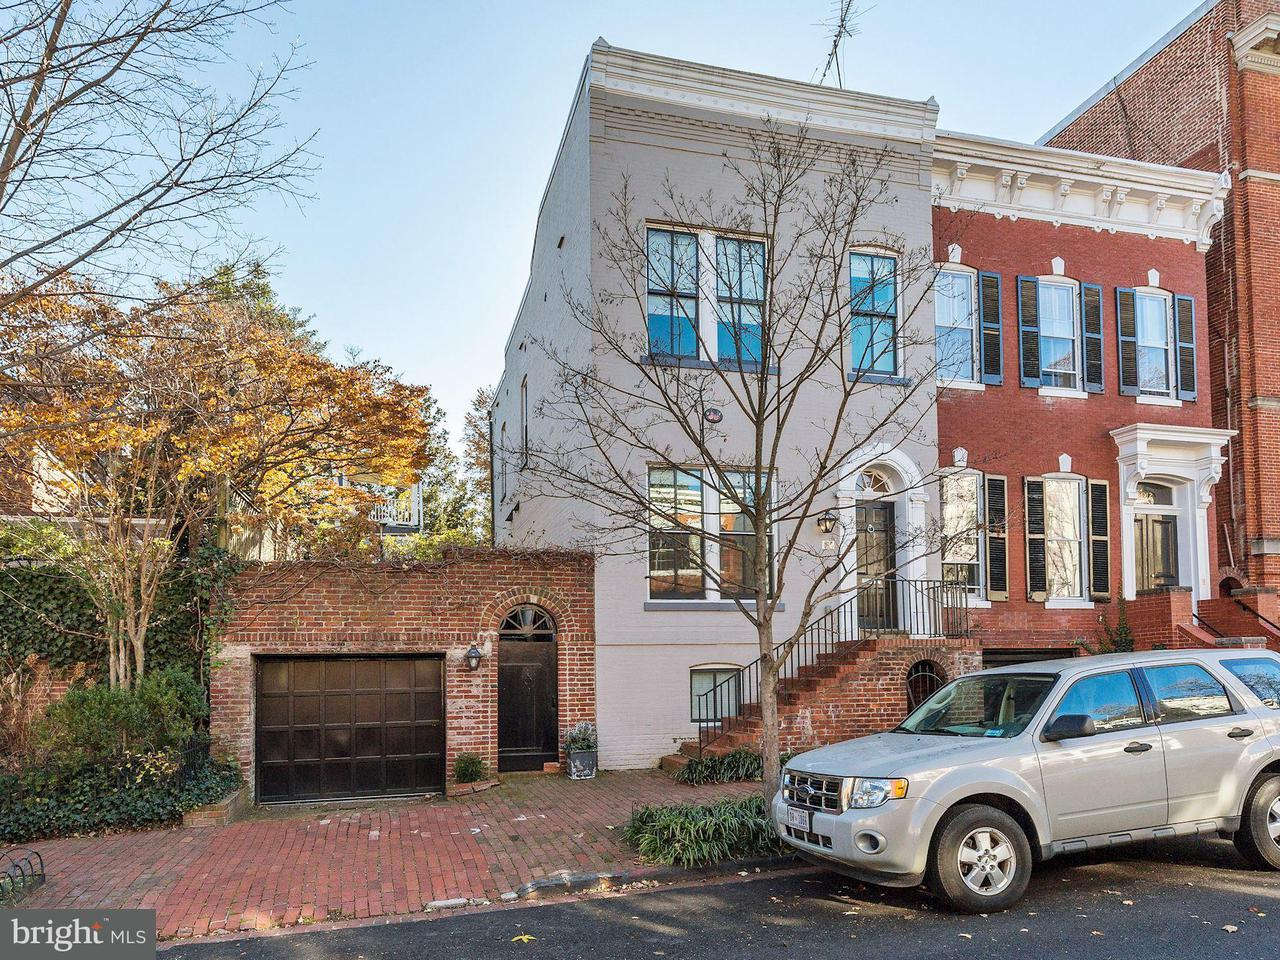 Townhouse for Sale at 3010 DUMBARTON ST NW 3010 DUMBARTON ST NW Washington, District Of Columbia 20007 United States